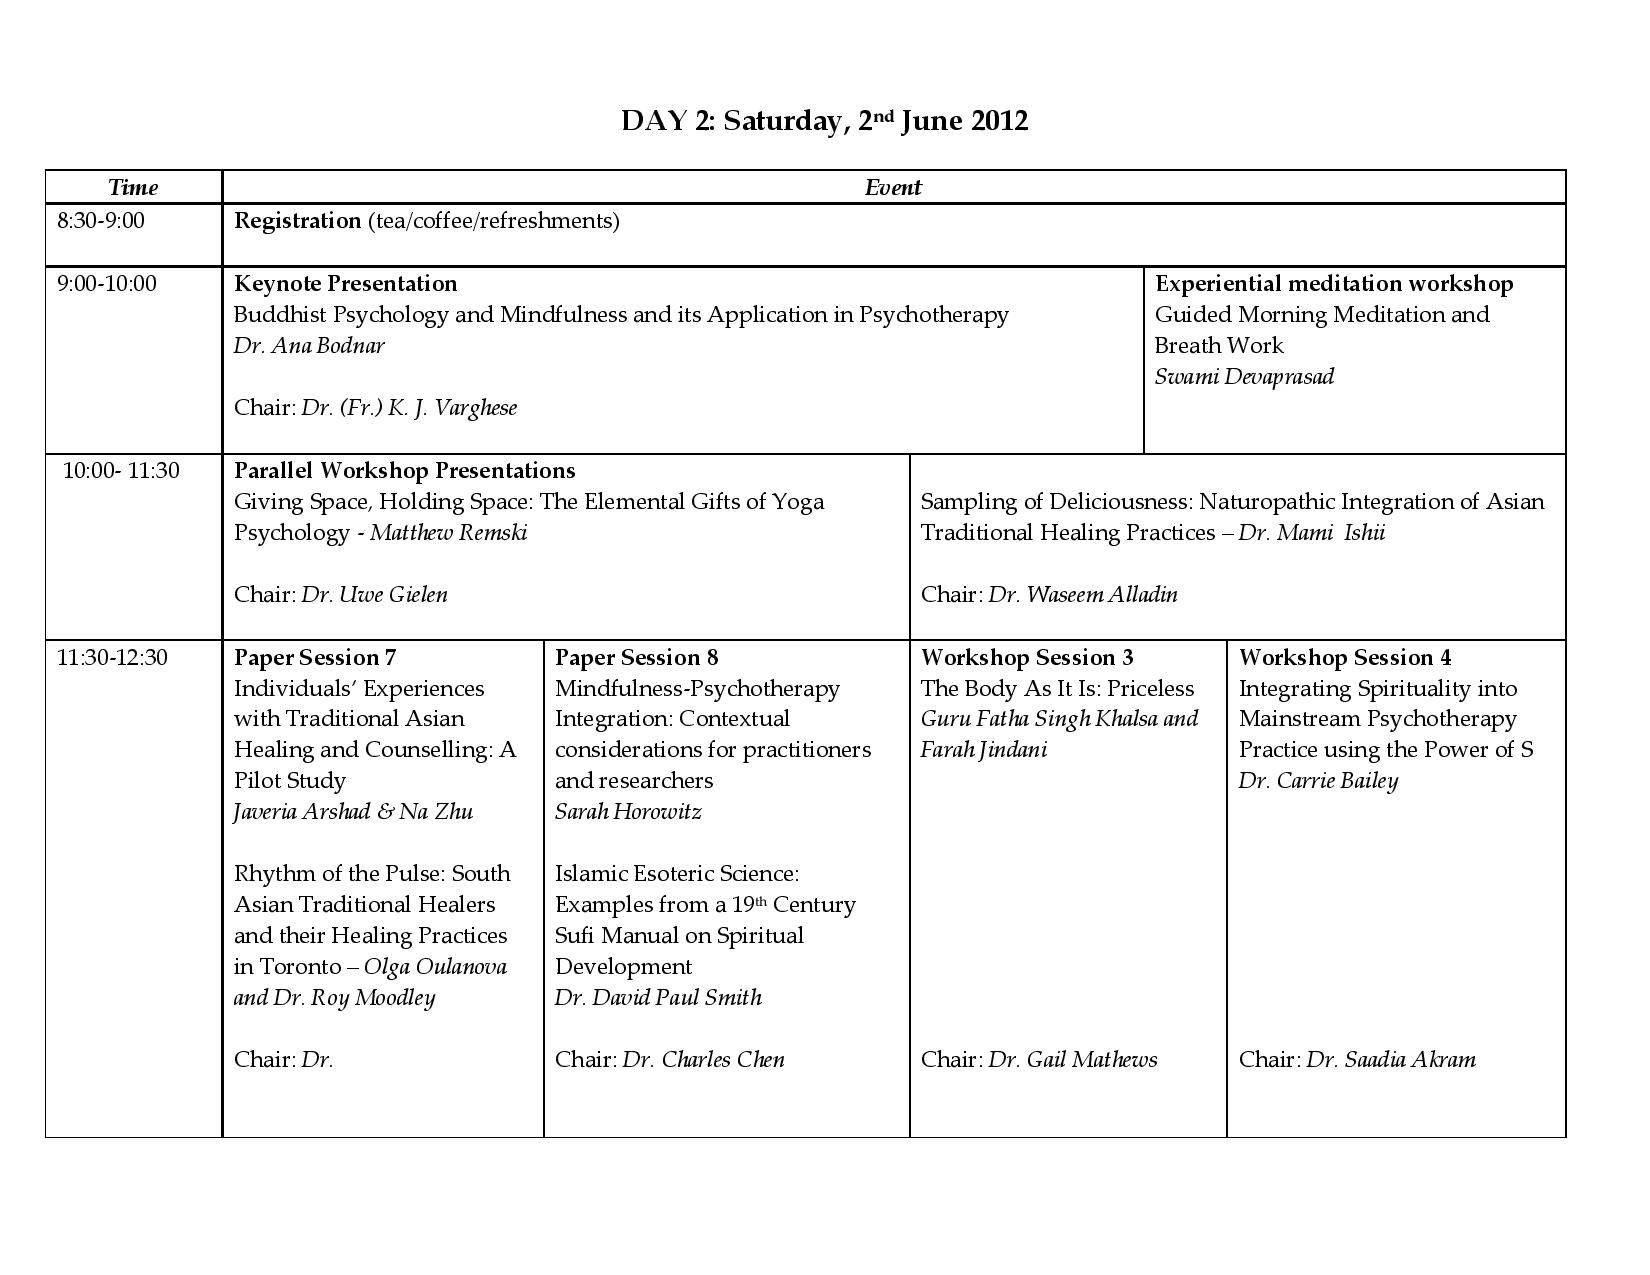 Program Schedule Day 2 pg 1